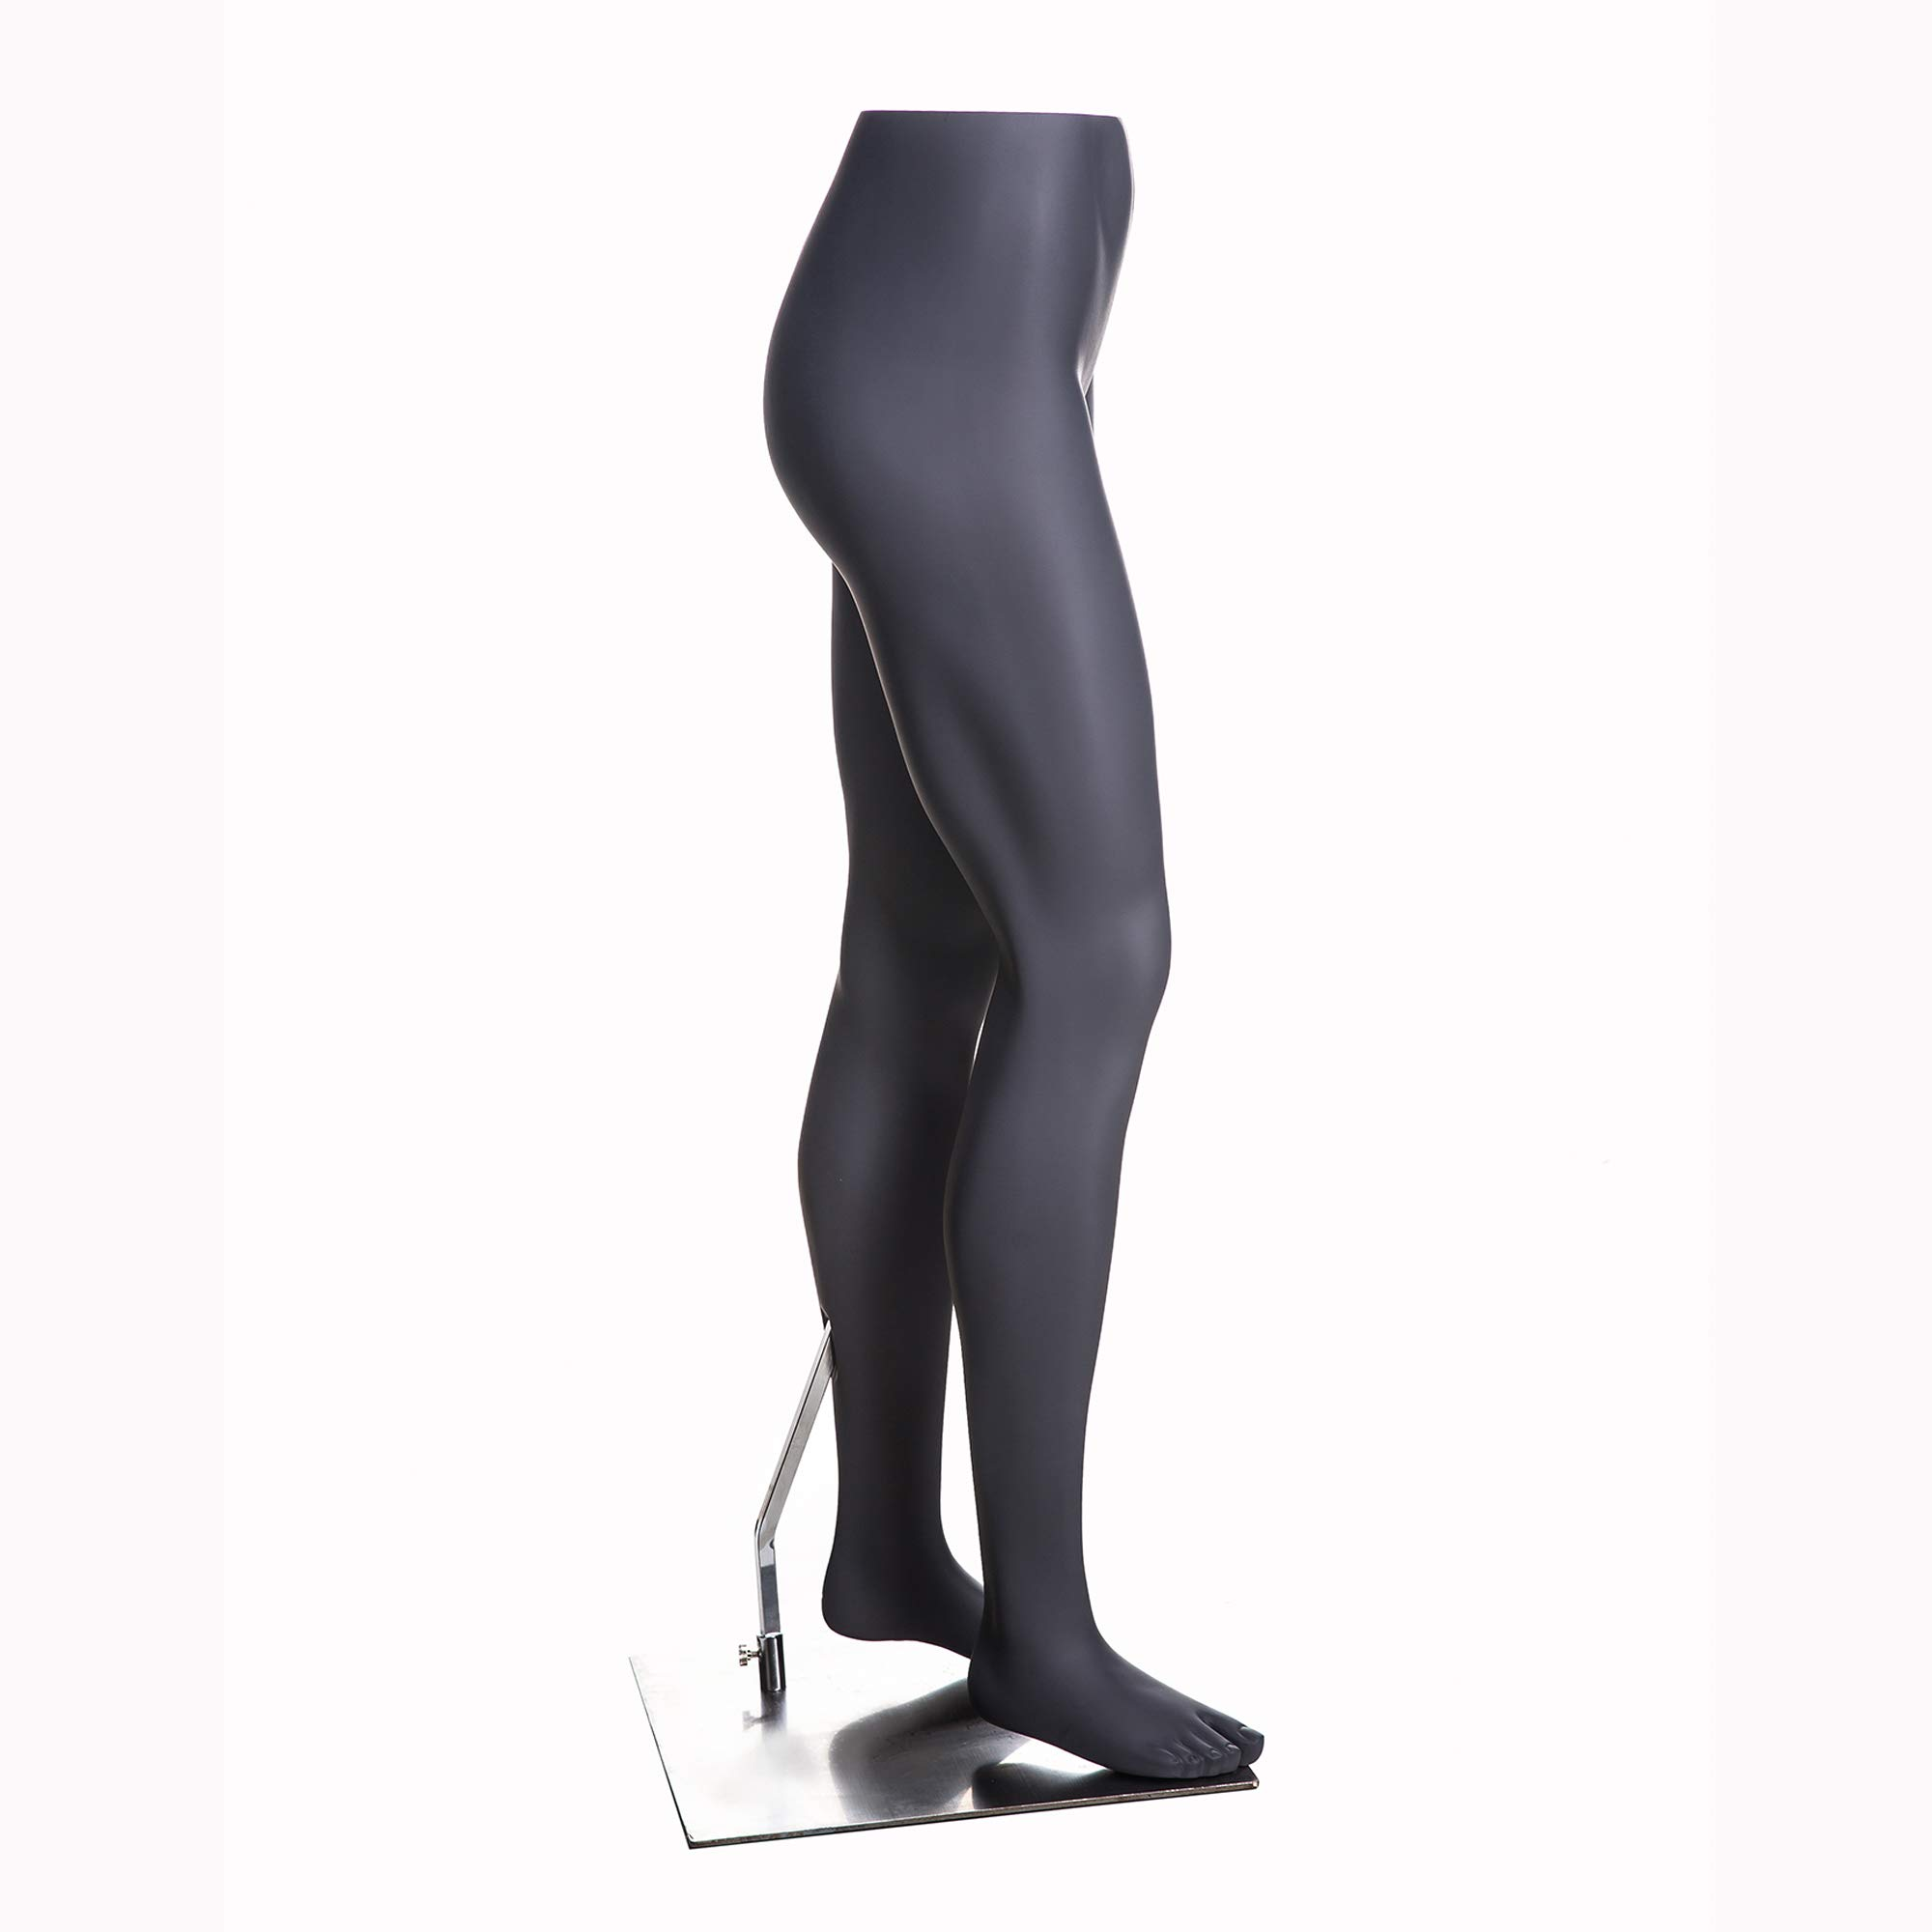 (MZ-HEF22LEG) High end Quality. Eye Catching Female Headless Mannequin Leg, Athletic Style. Standing Pose. by Roxy Display (Image #2)